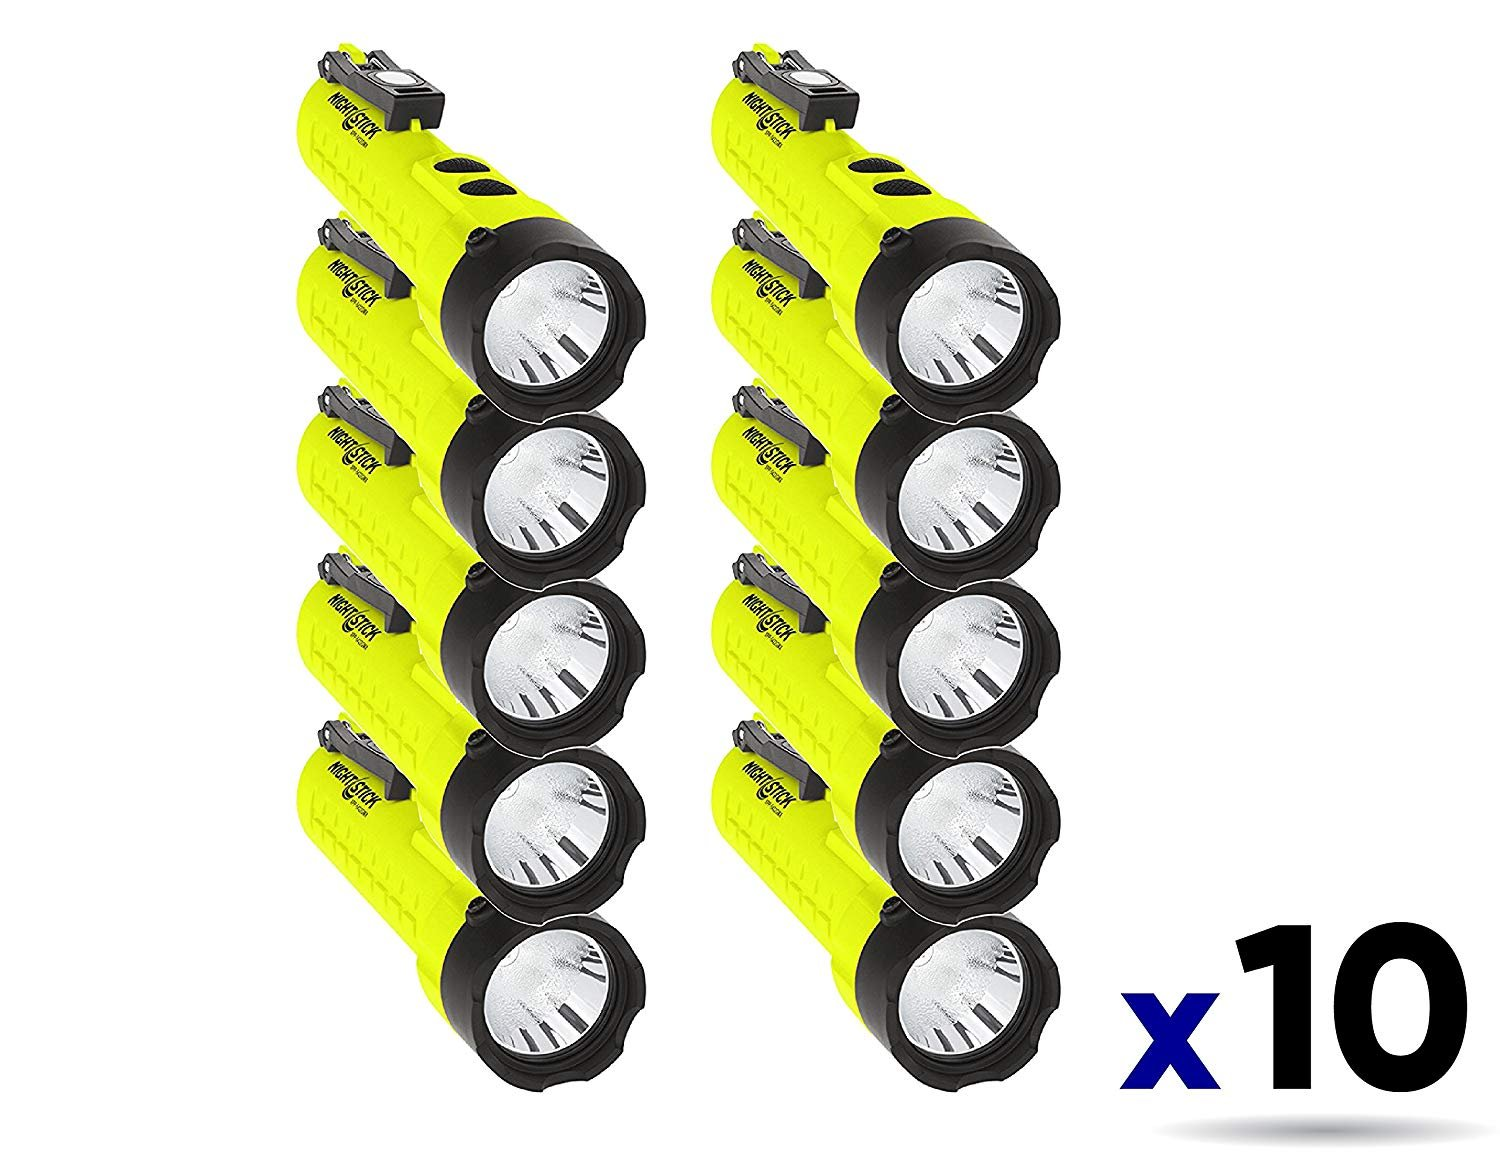 Nightstick XPP-5422GMX X-Series Intrinsically Safe Dual-Light Flashlight with Dual Magnets Green/Black (10 Pack)